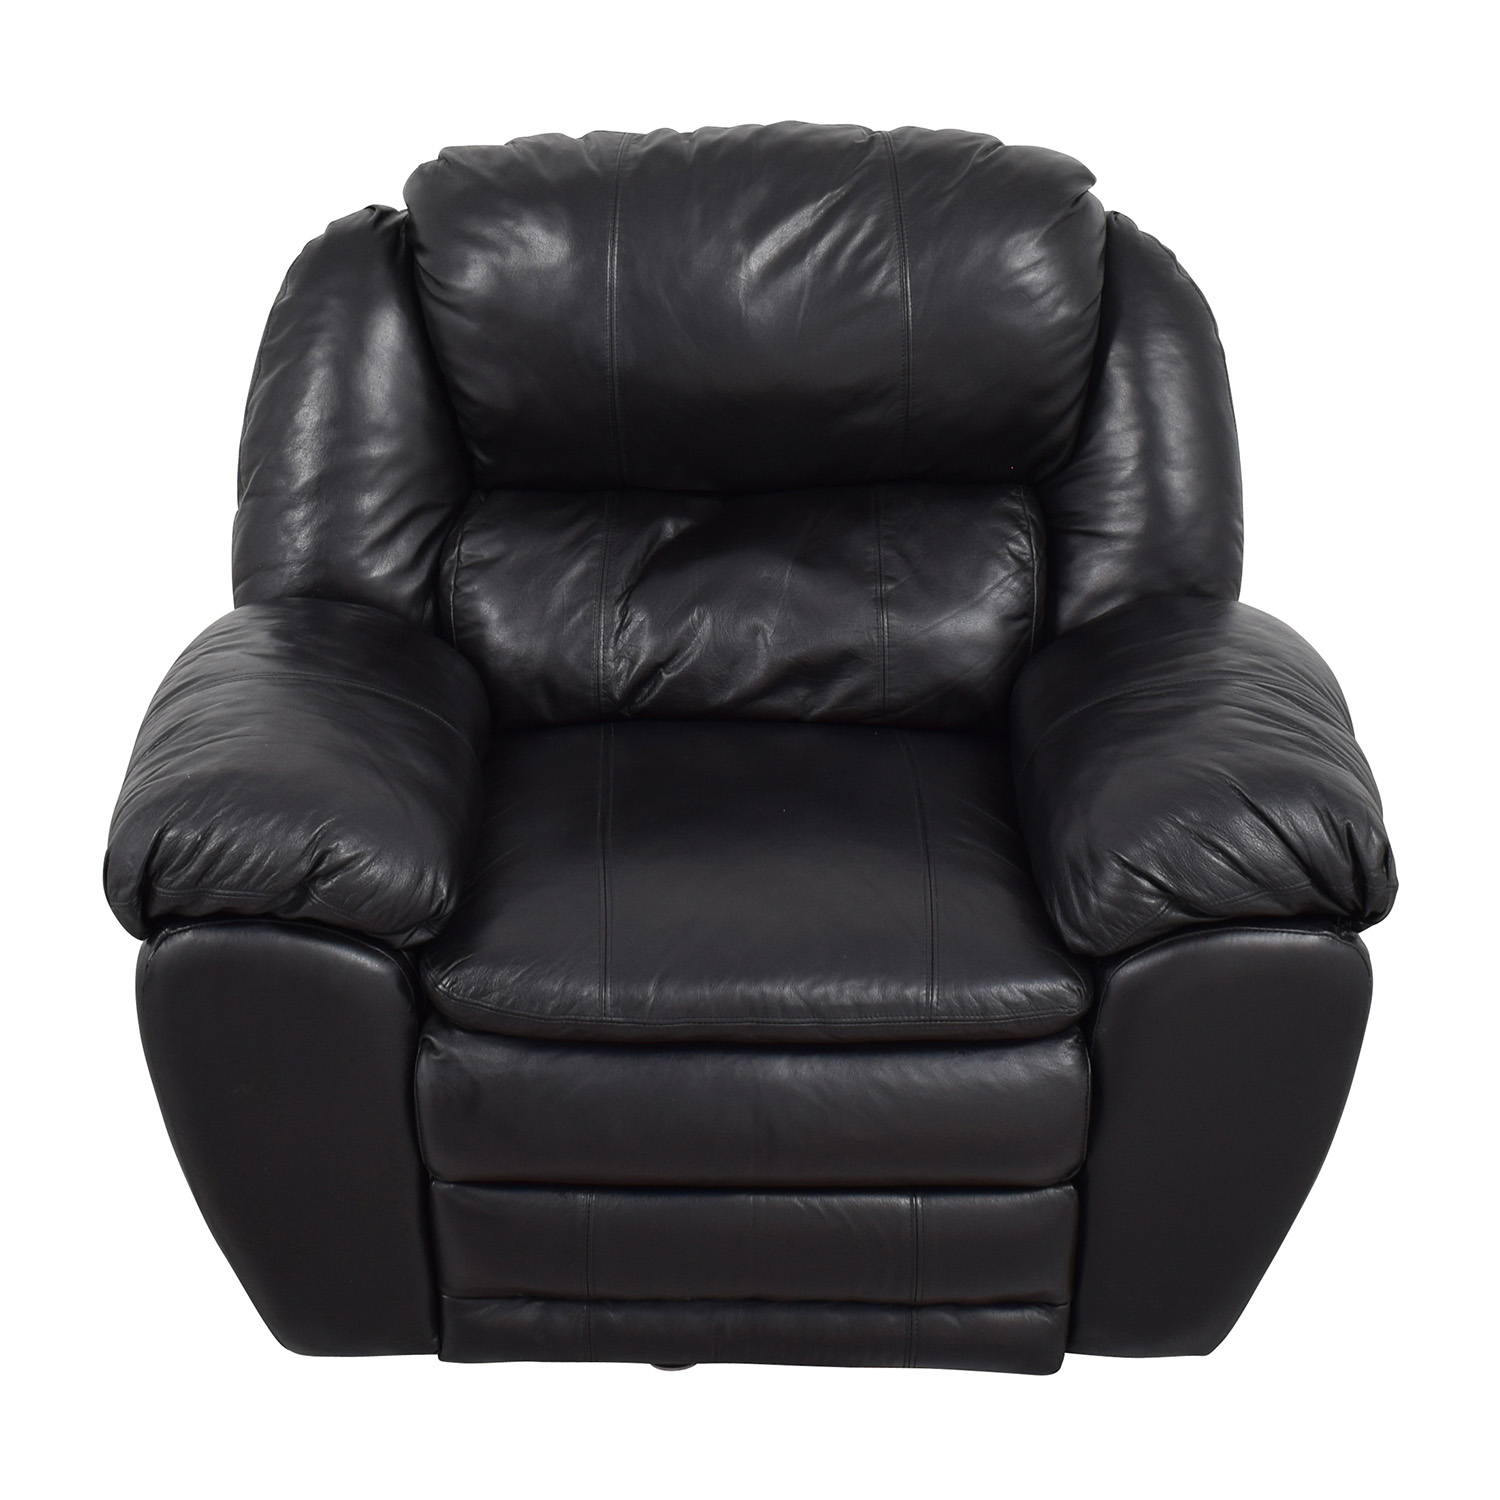 Berkline Berkline Black Leather Rocking Recliner Recliners